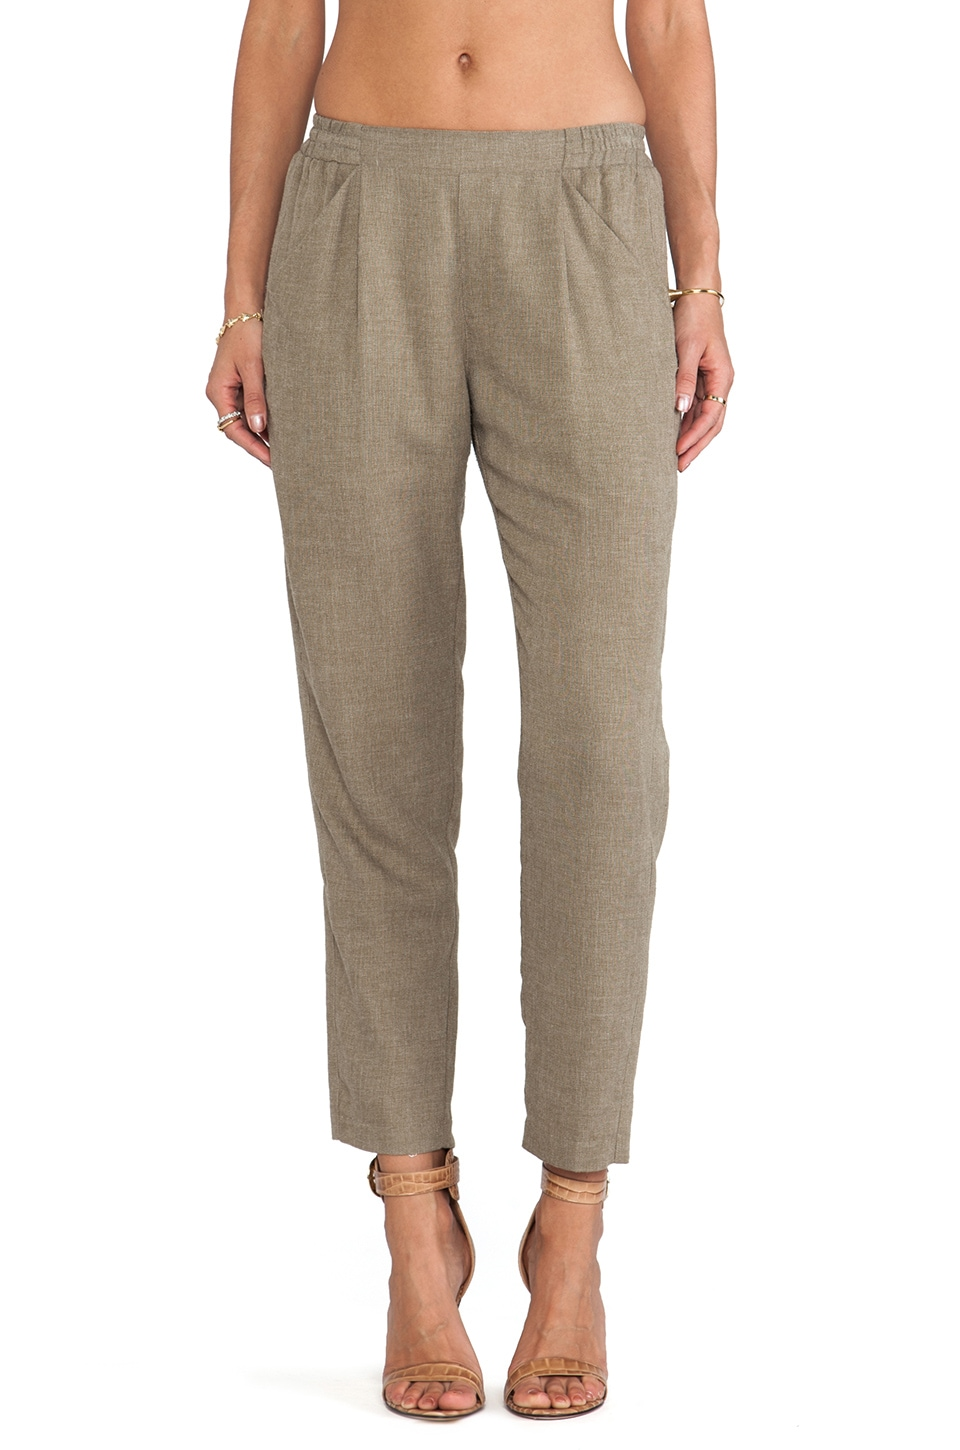 Greylin Cecil Pants in Olive